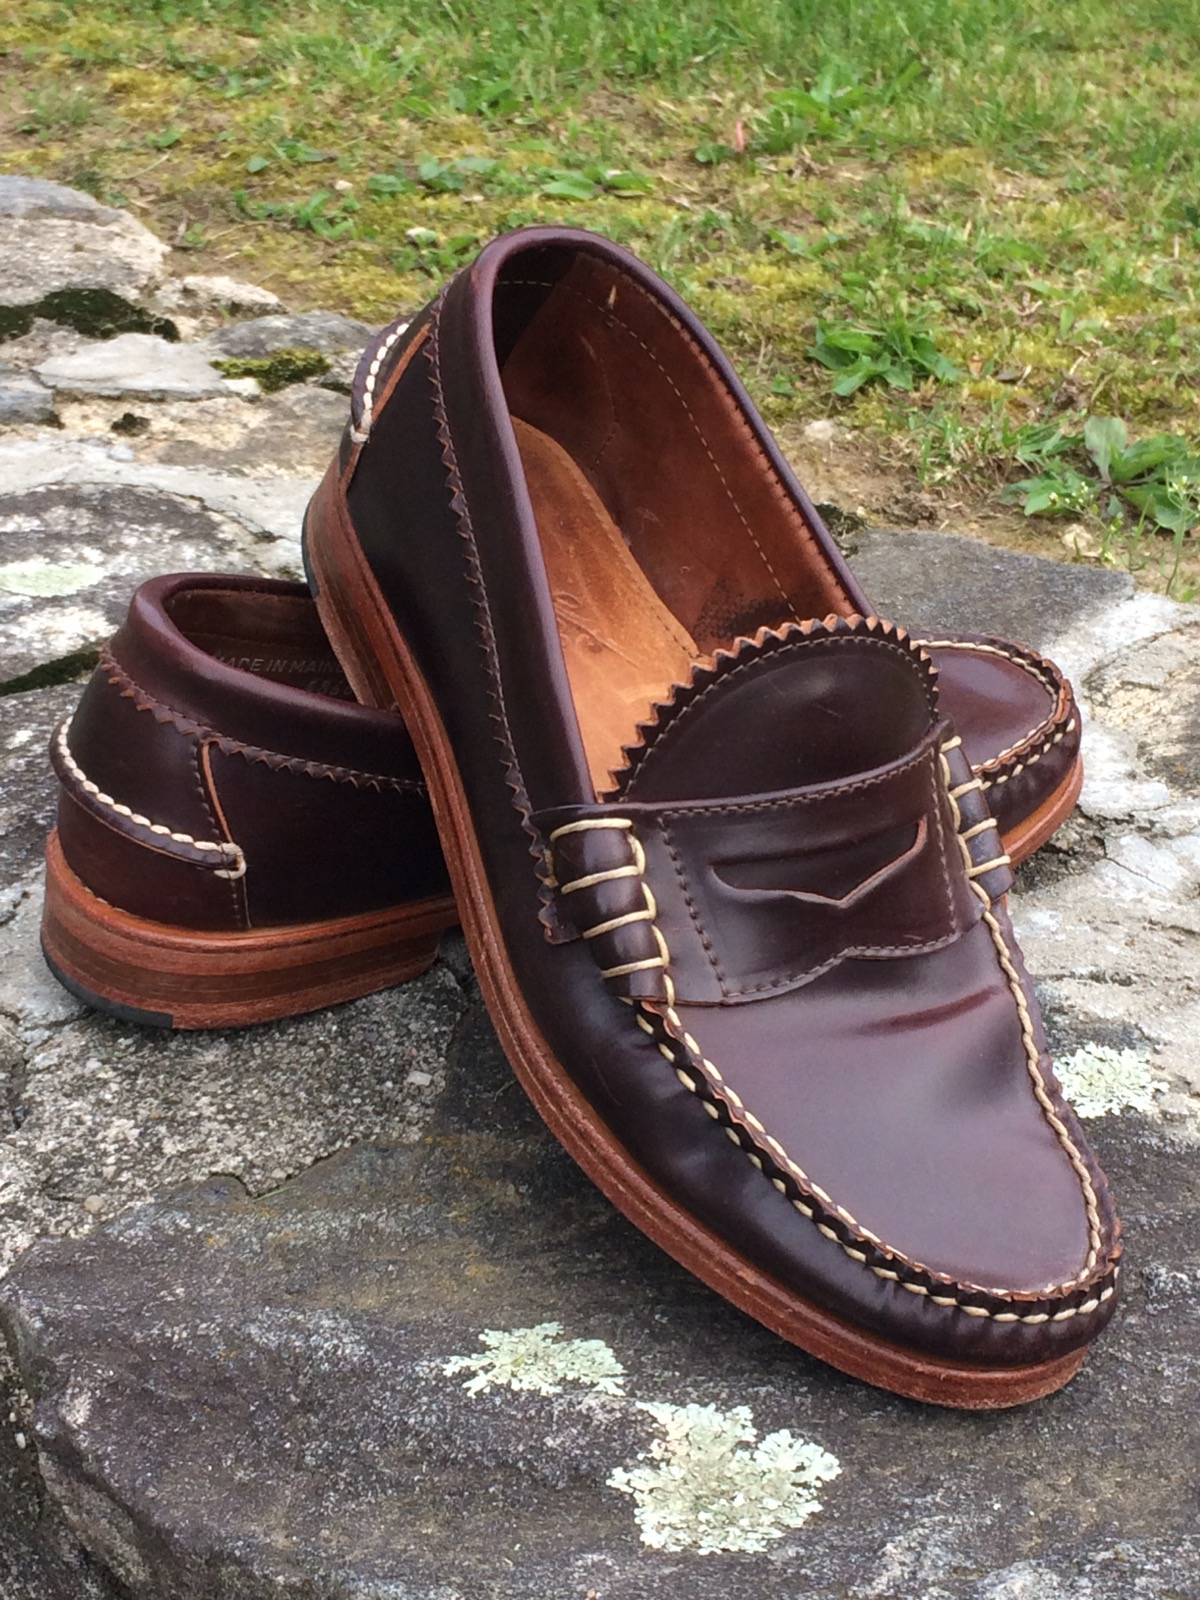 8667d5d0b97 Rancourt   Co. Shell Cordovan Pinch Penny Loafer Size 8 - Casual Leather  Shoes for Sale - Grailed